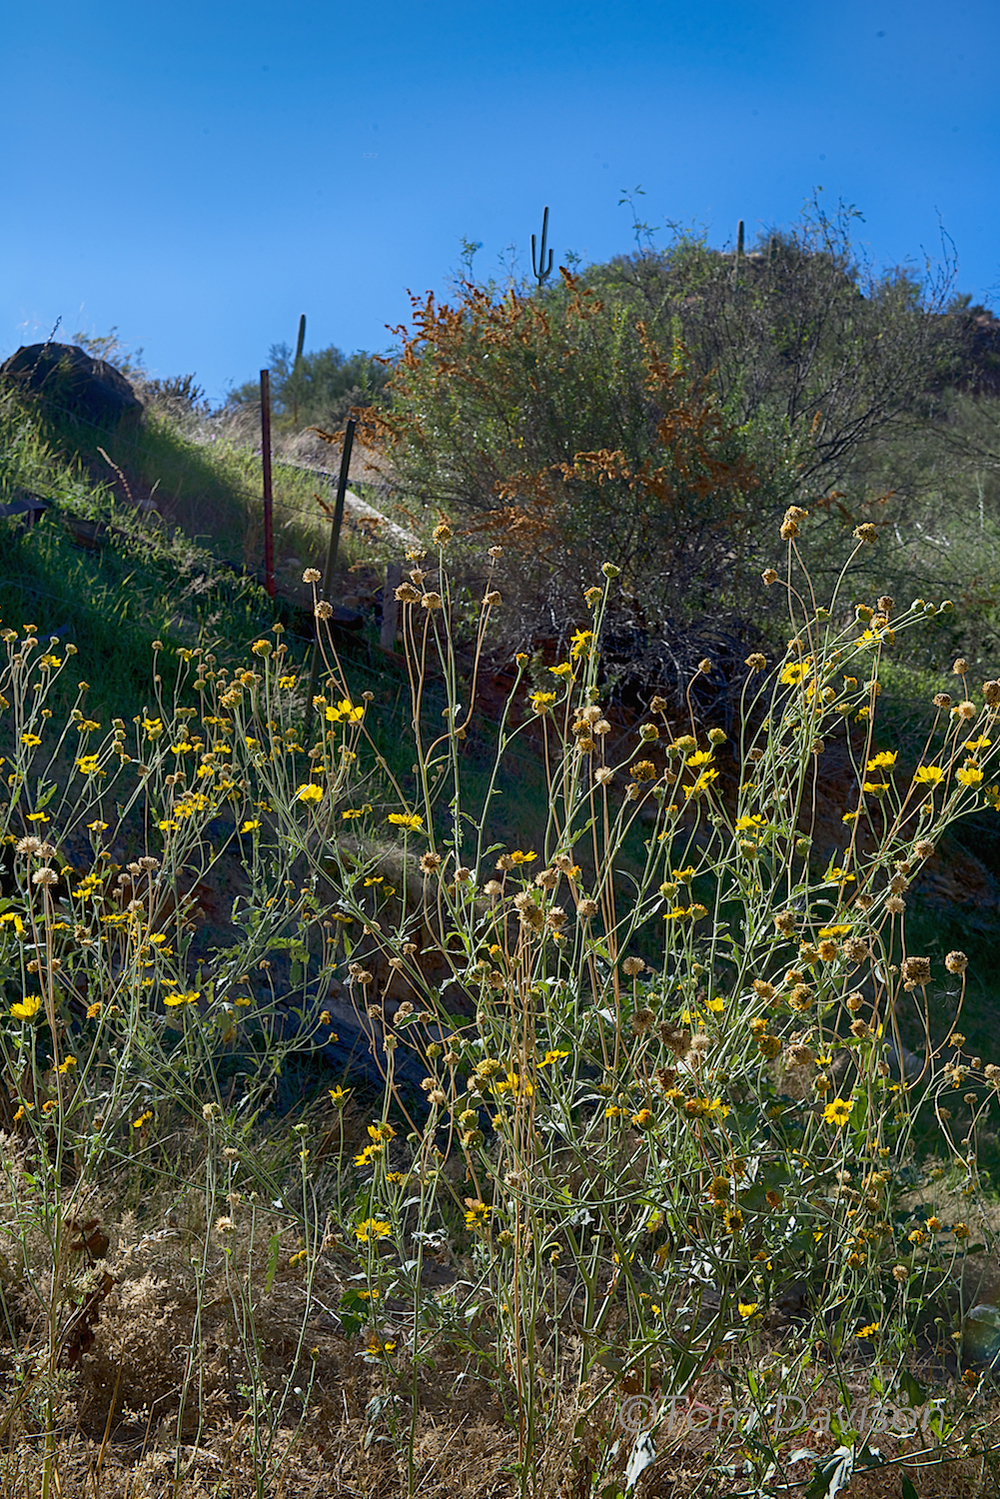 The train tracks are just above the yellow flowers and below the cactus. Imagine our surprise when that big thing went by!! Yikes!!